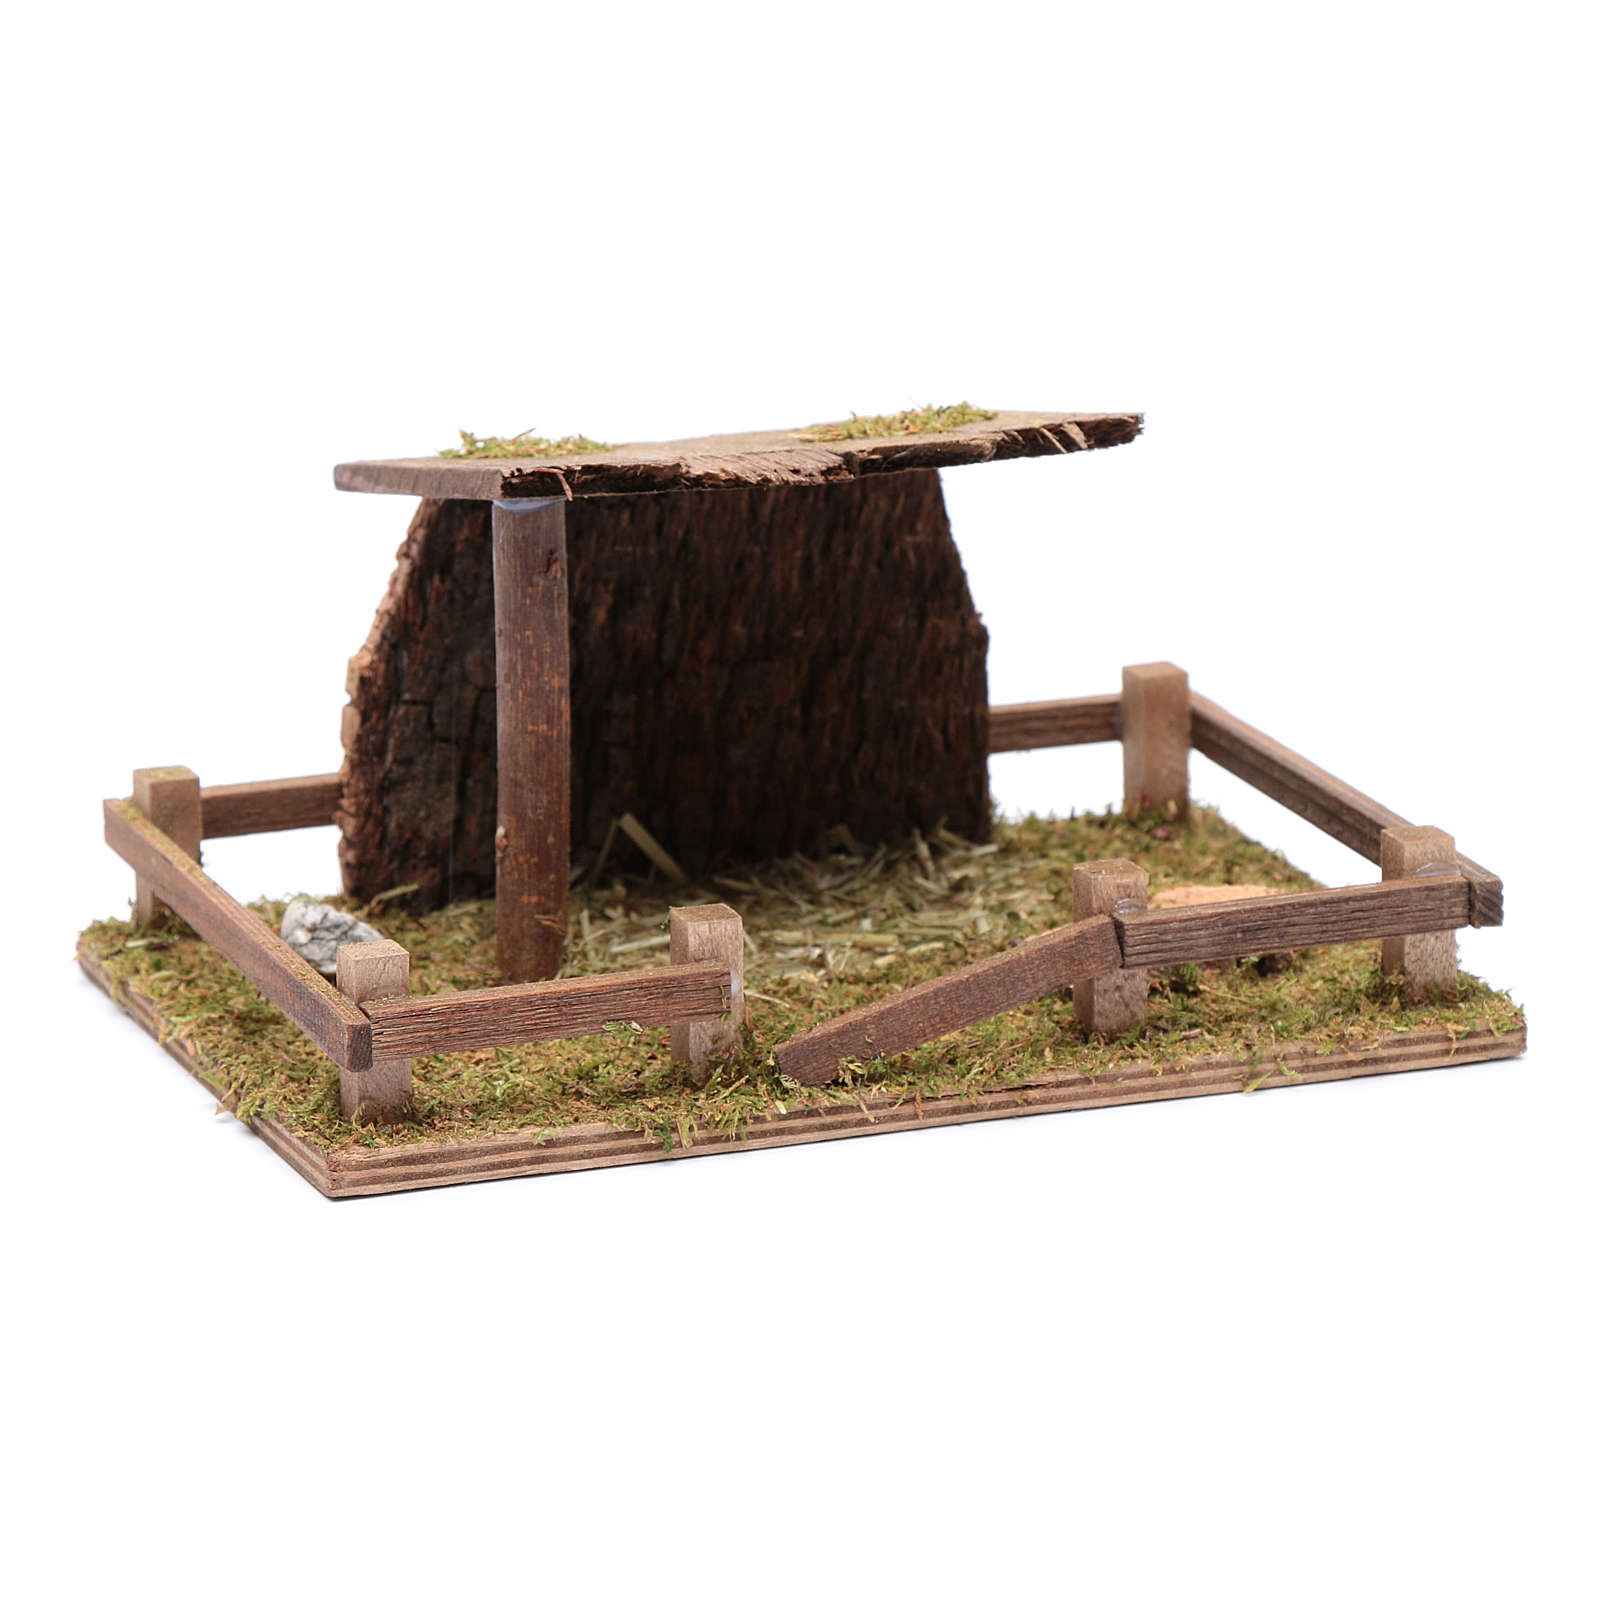 Fence with roof for animal statues 5x20x10 cm 4